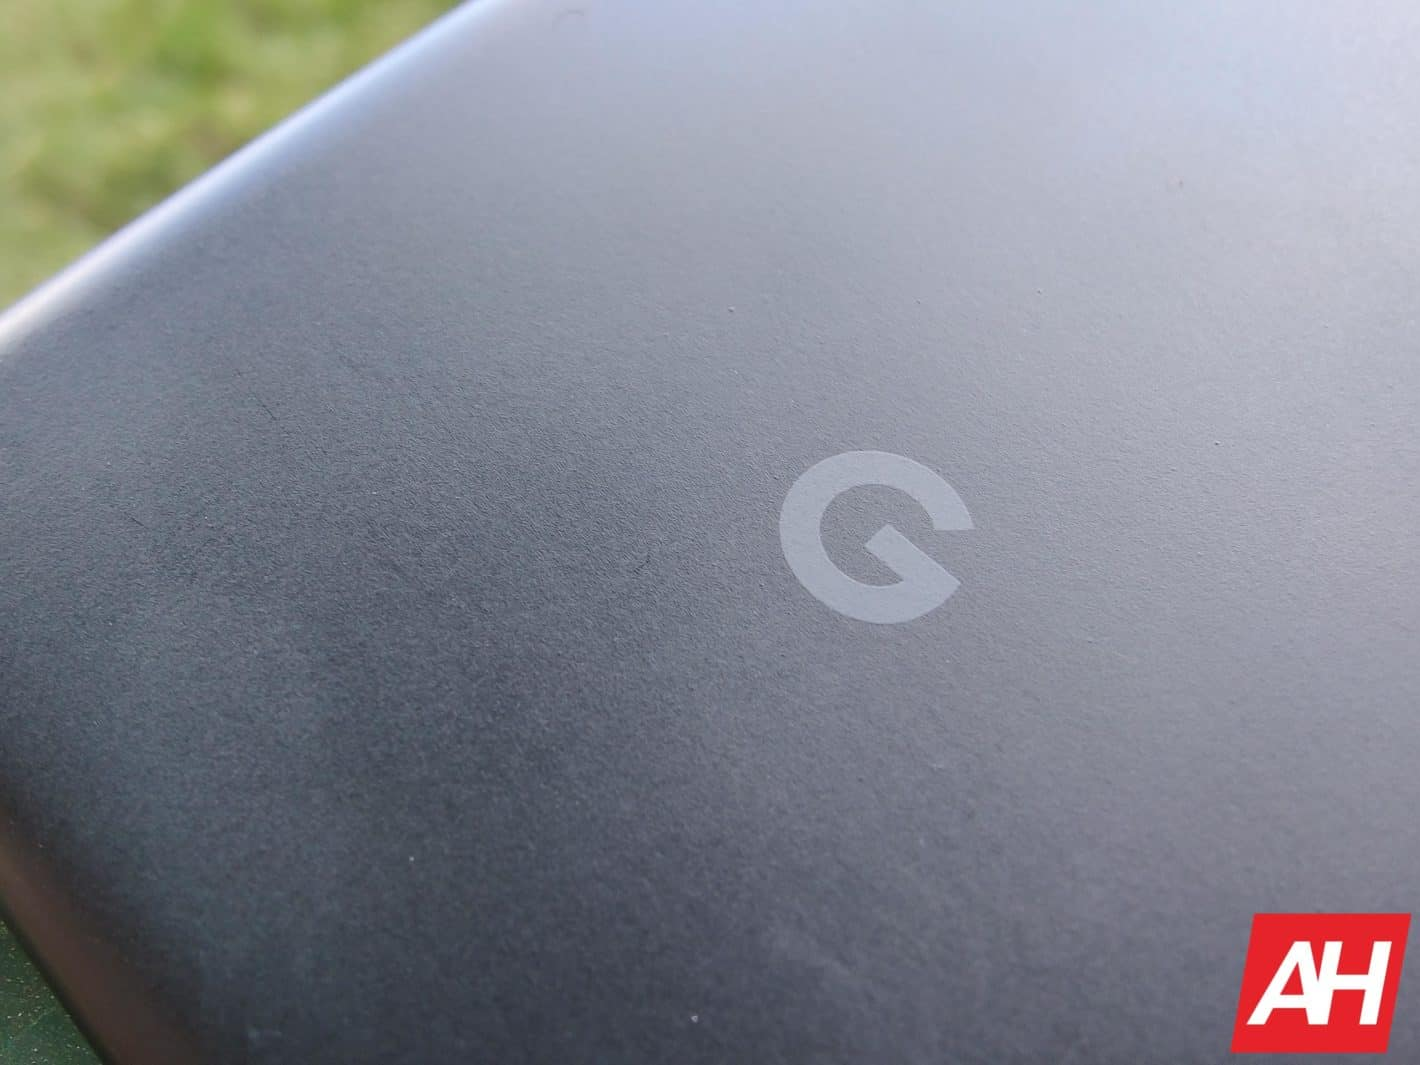 Google Pixel 5a Spotted in Android Source Code